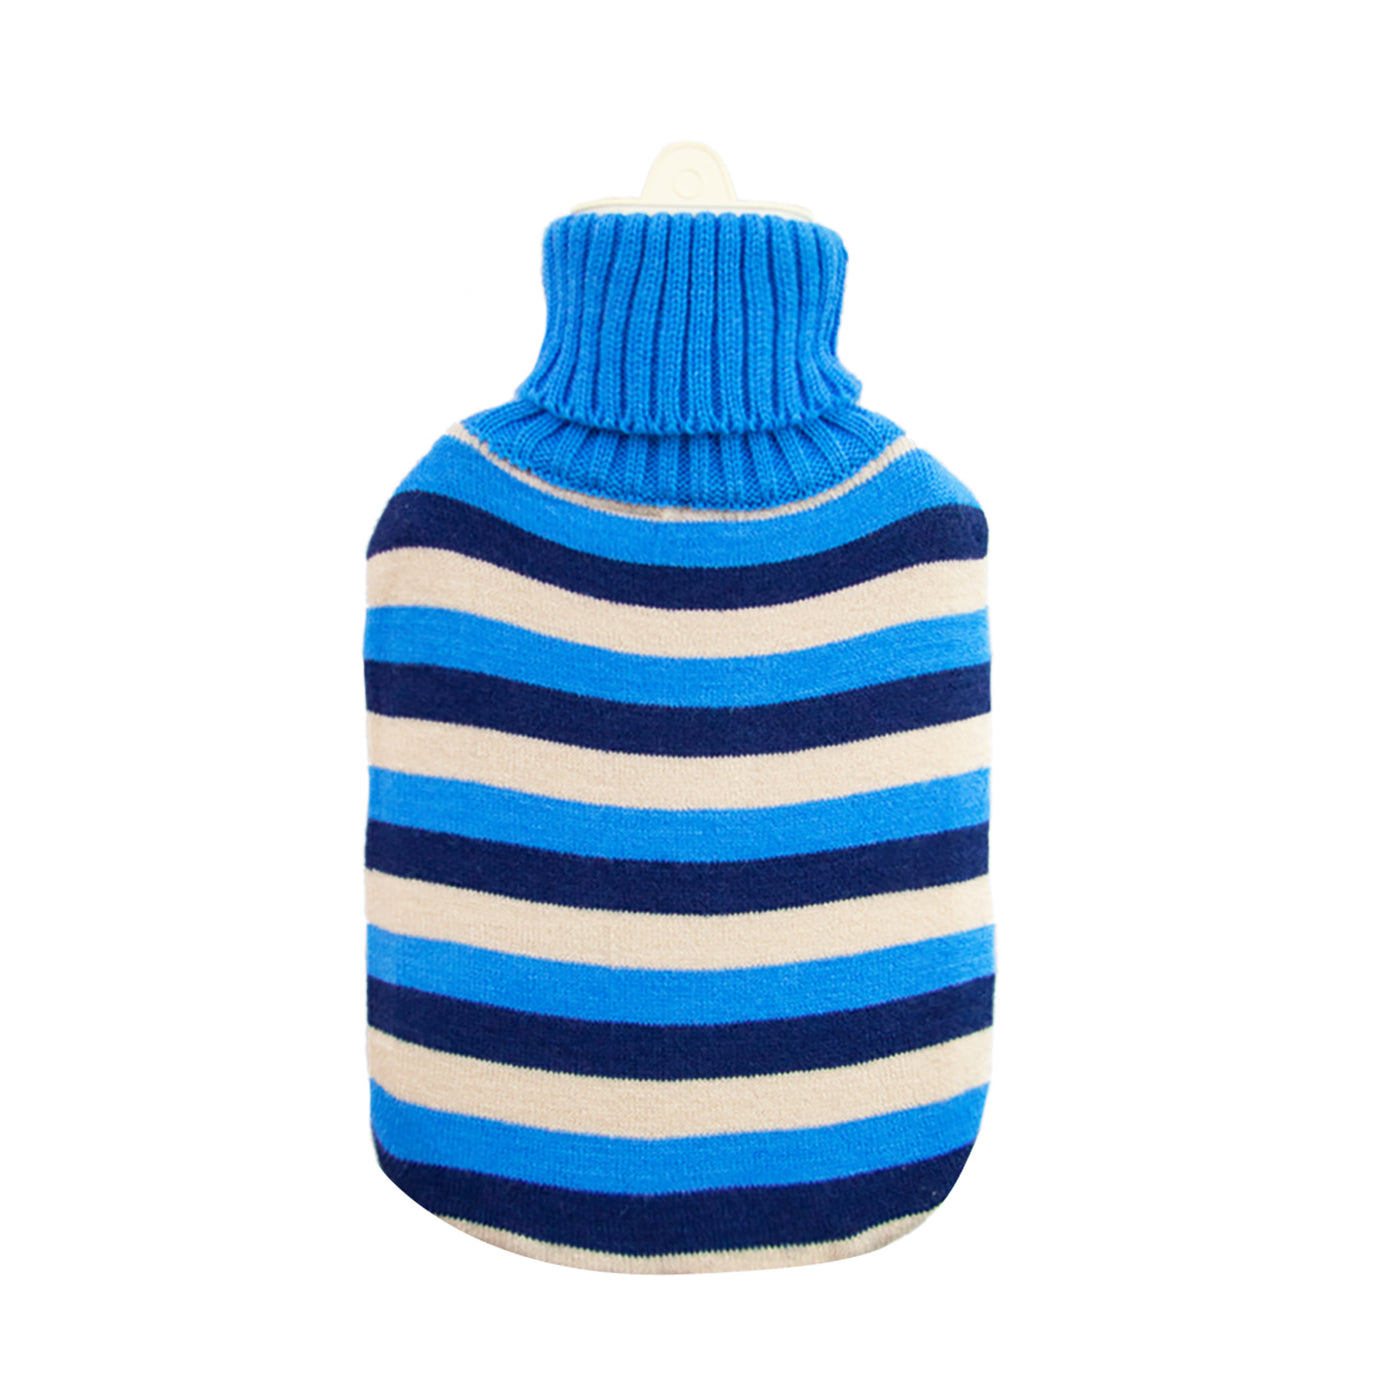 Hot Water Bottle & Cover - Stripes Knit - The Grain Shop Online Store